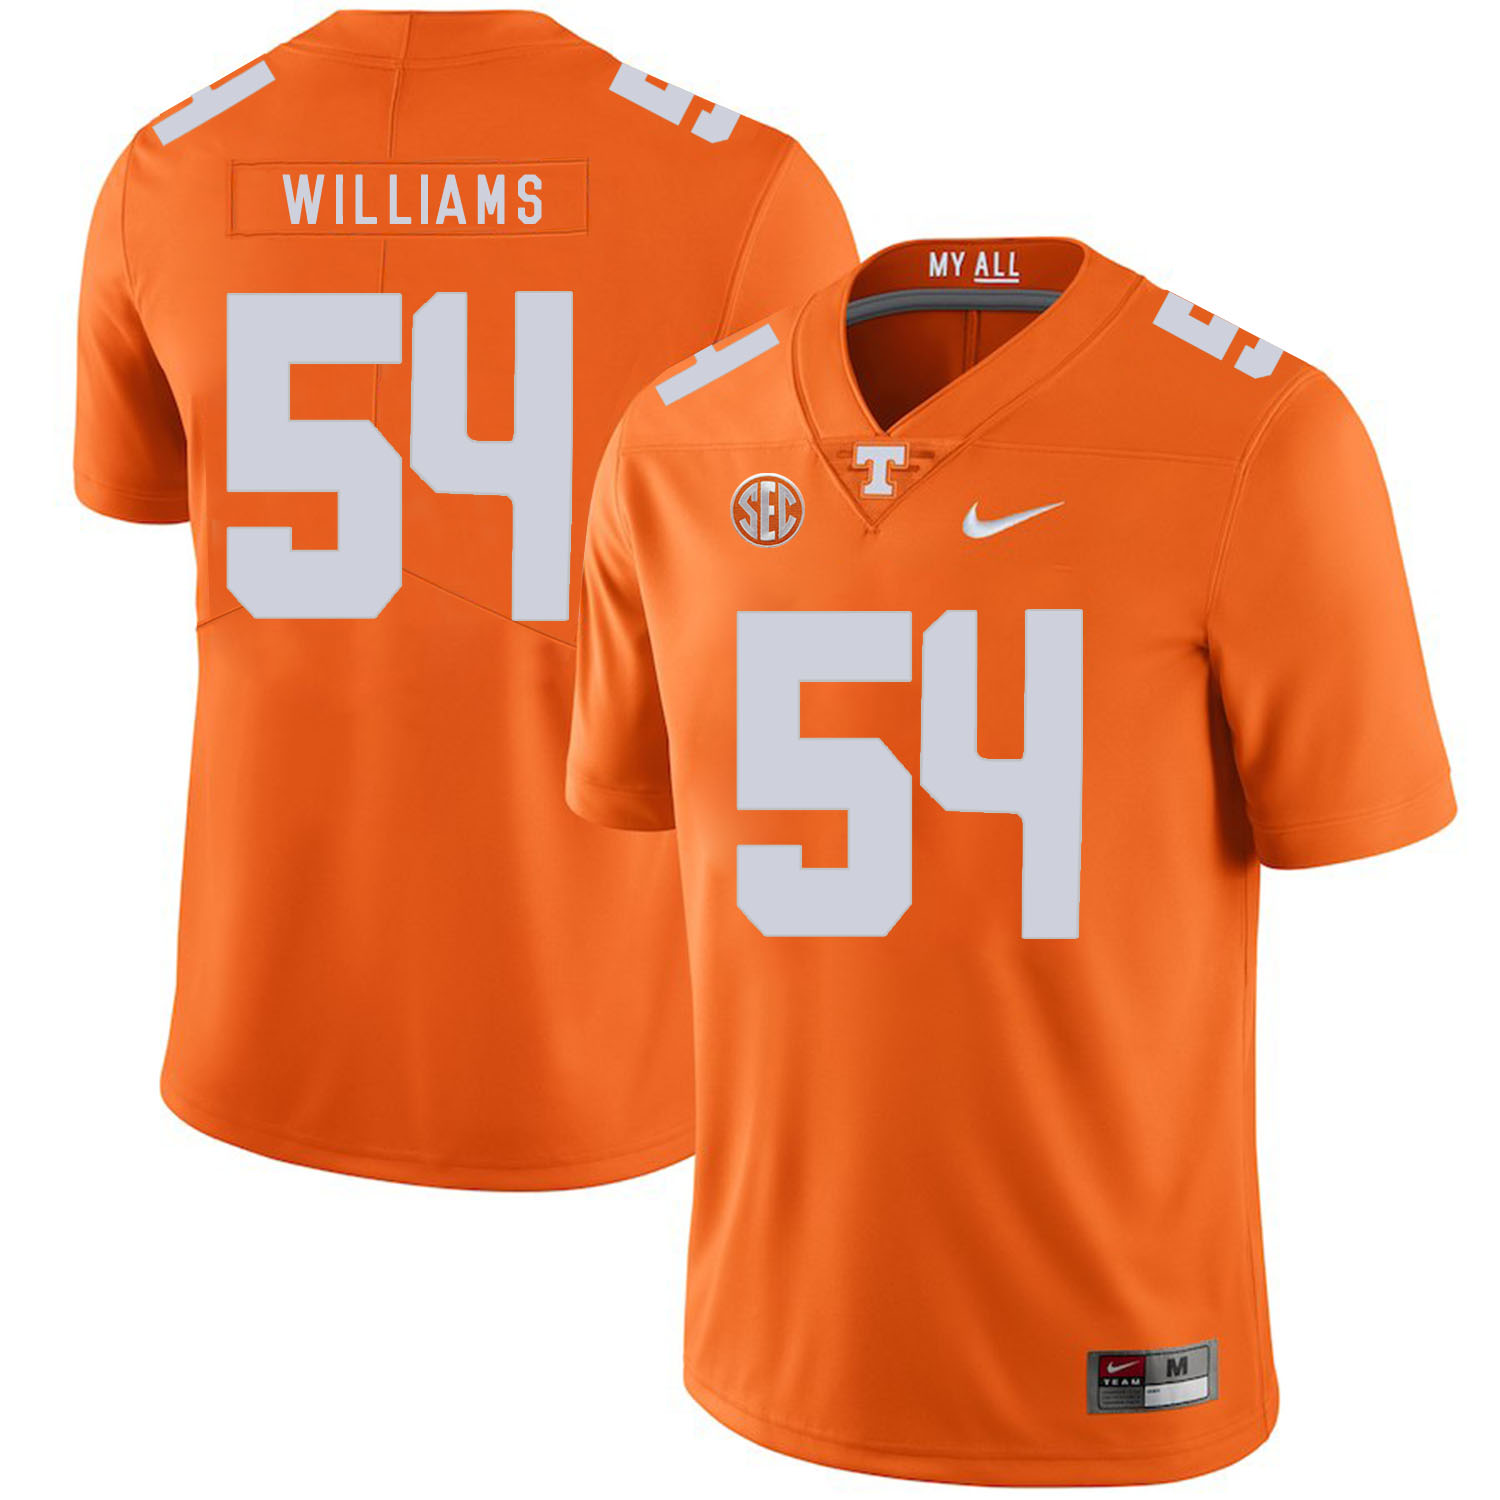 Tennessee Volunteers 54 Jordan Williams Orange Nike College Football Jersey